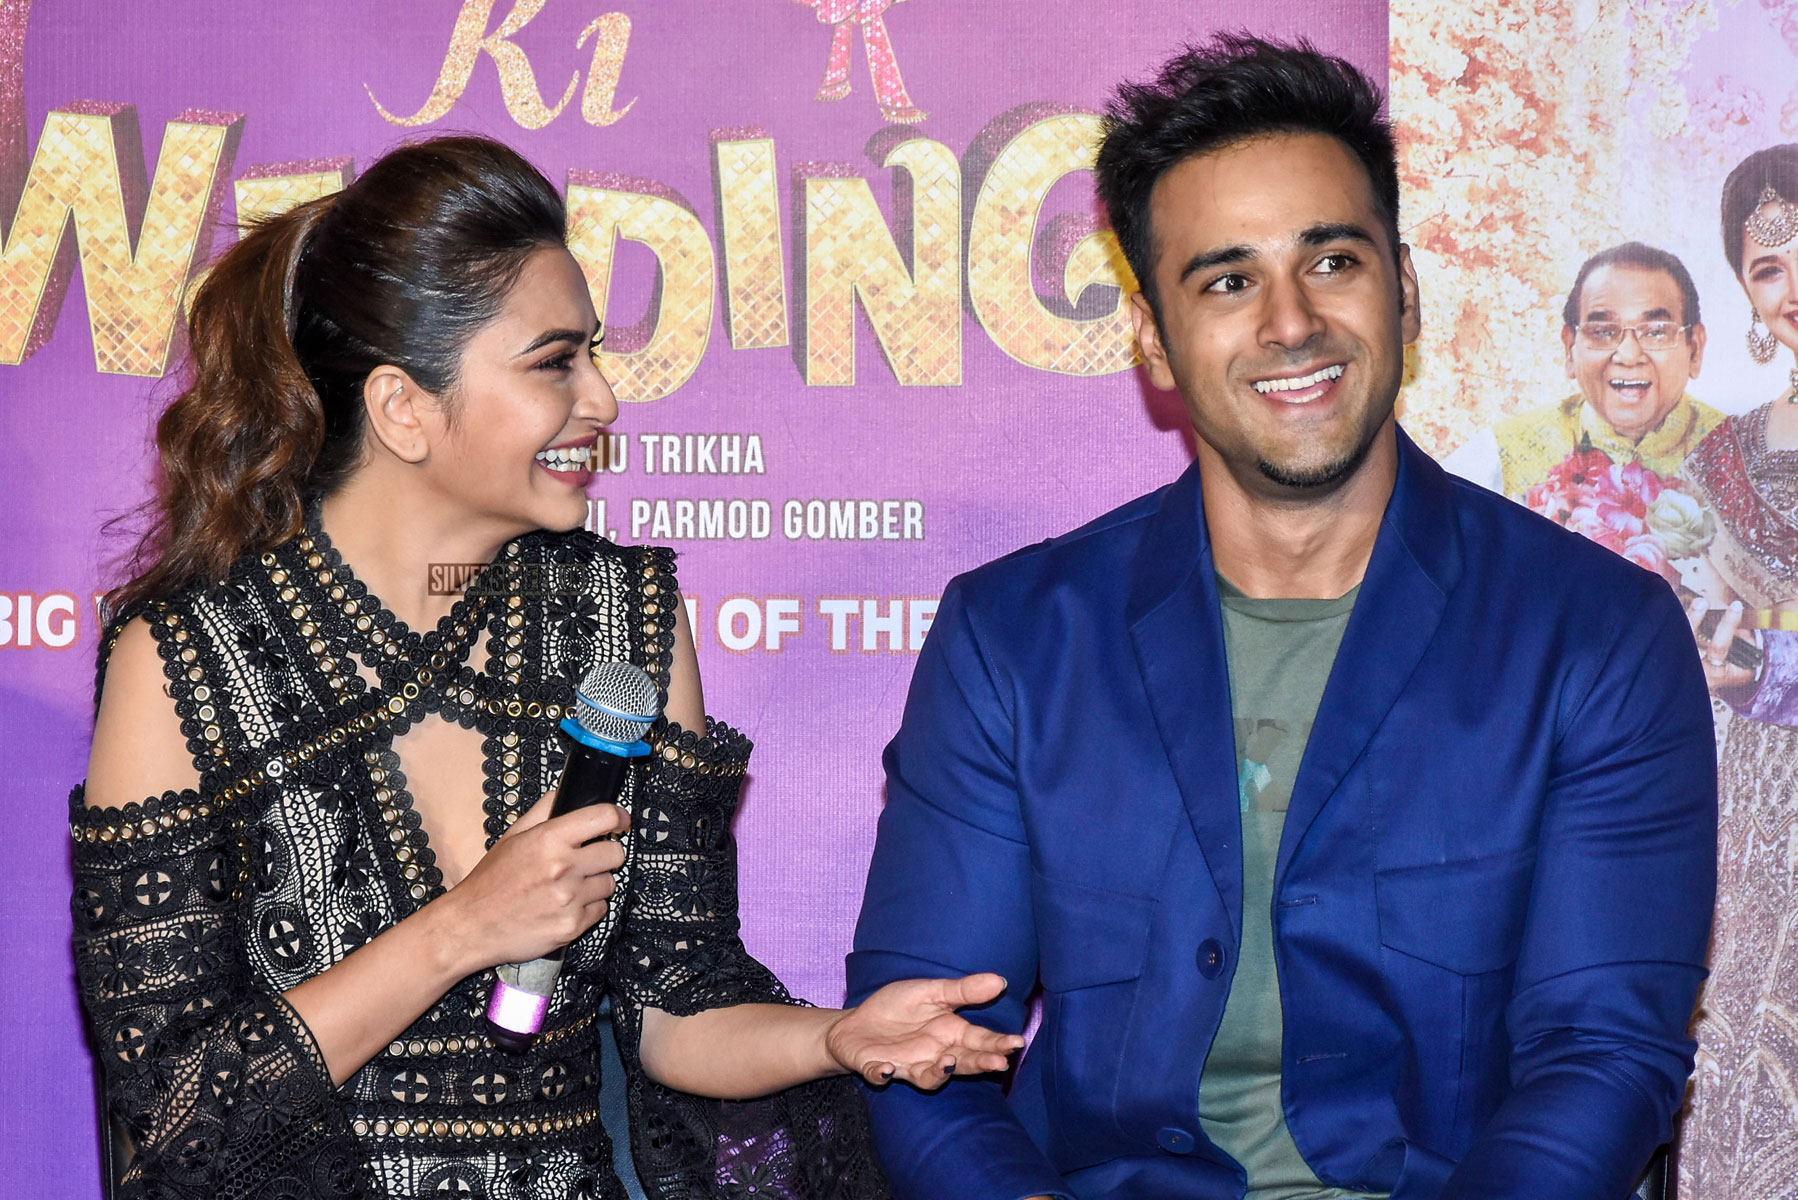 Veerey Ki Wedding.Pulkit Samrat Kriti Kharbanda At The Trailer Launch Of Veerey Ki